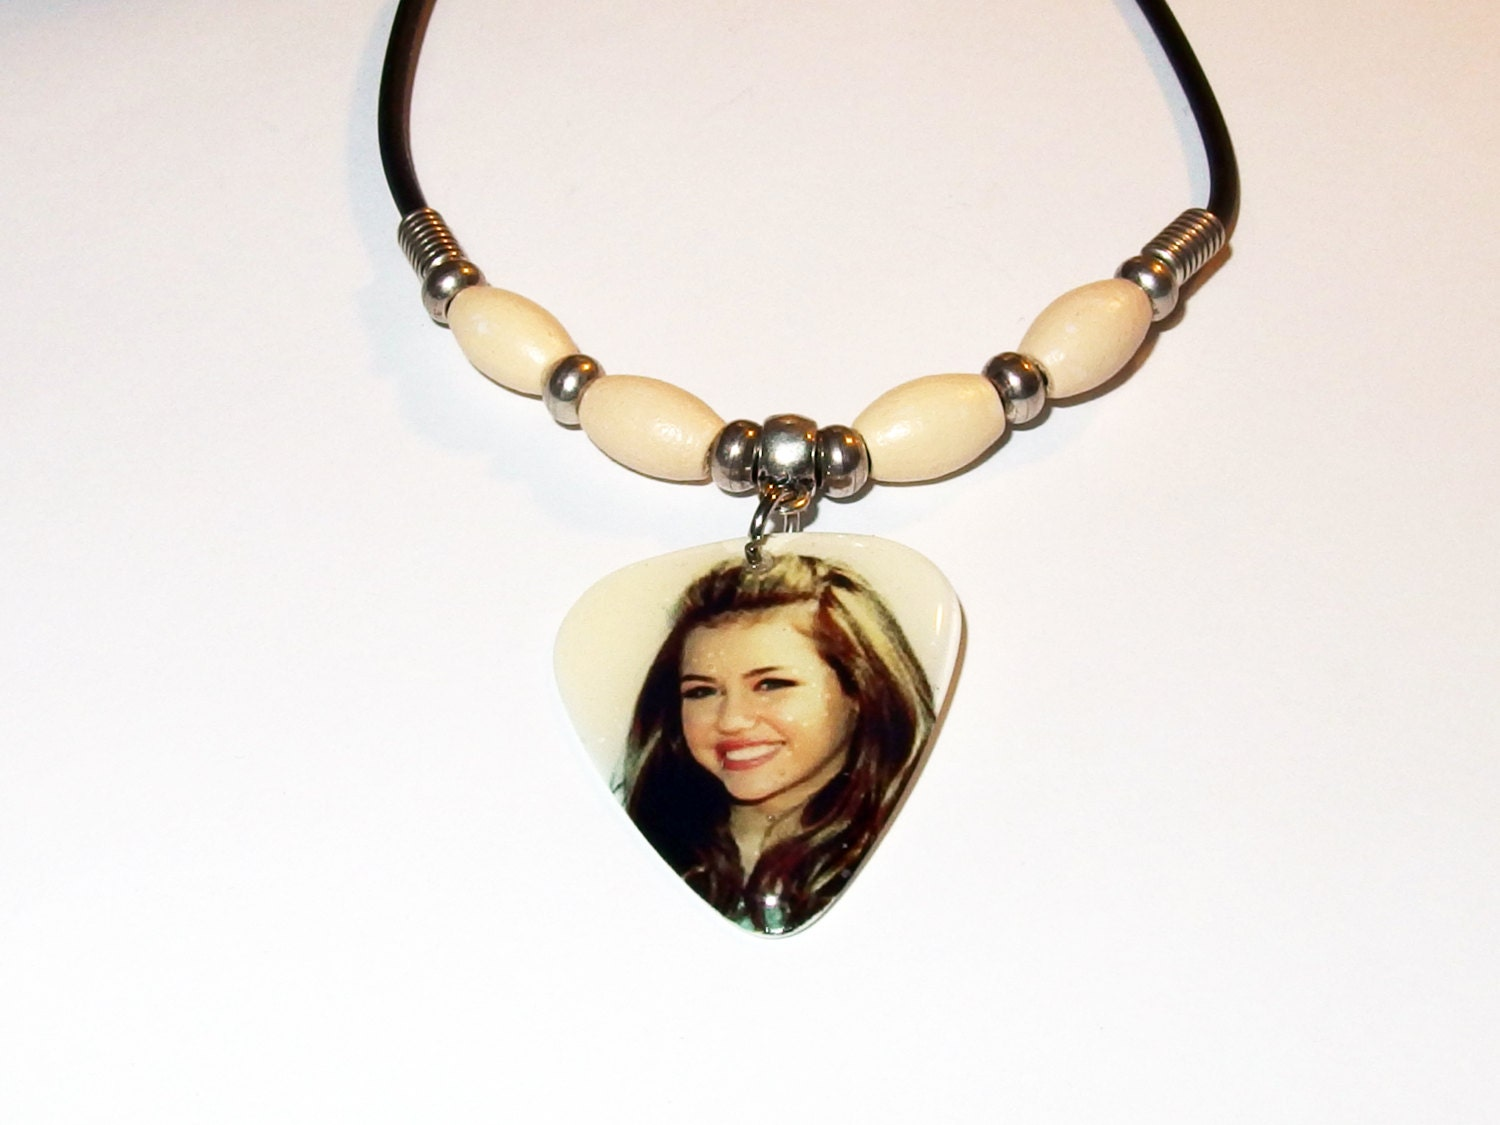 Miley Cyrus Photo Guitar Pick Necklace